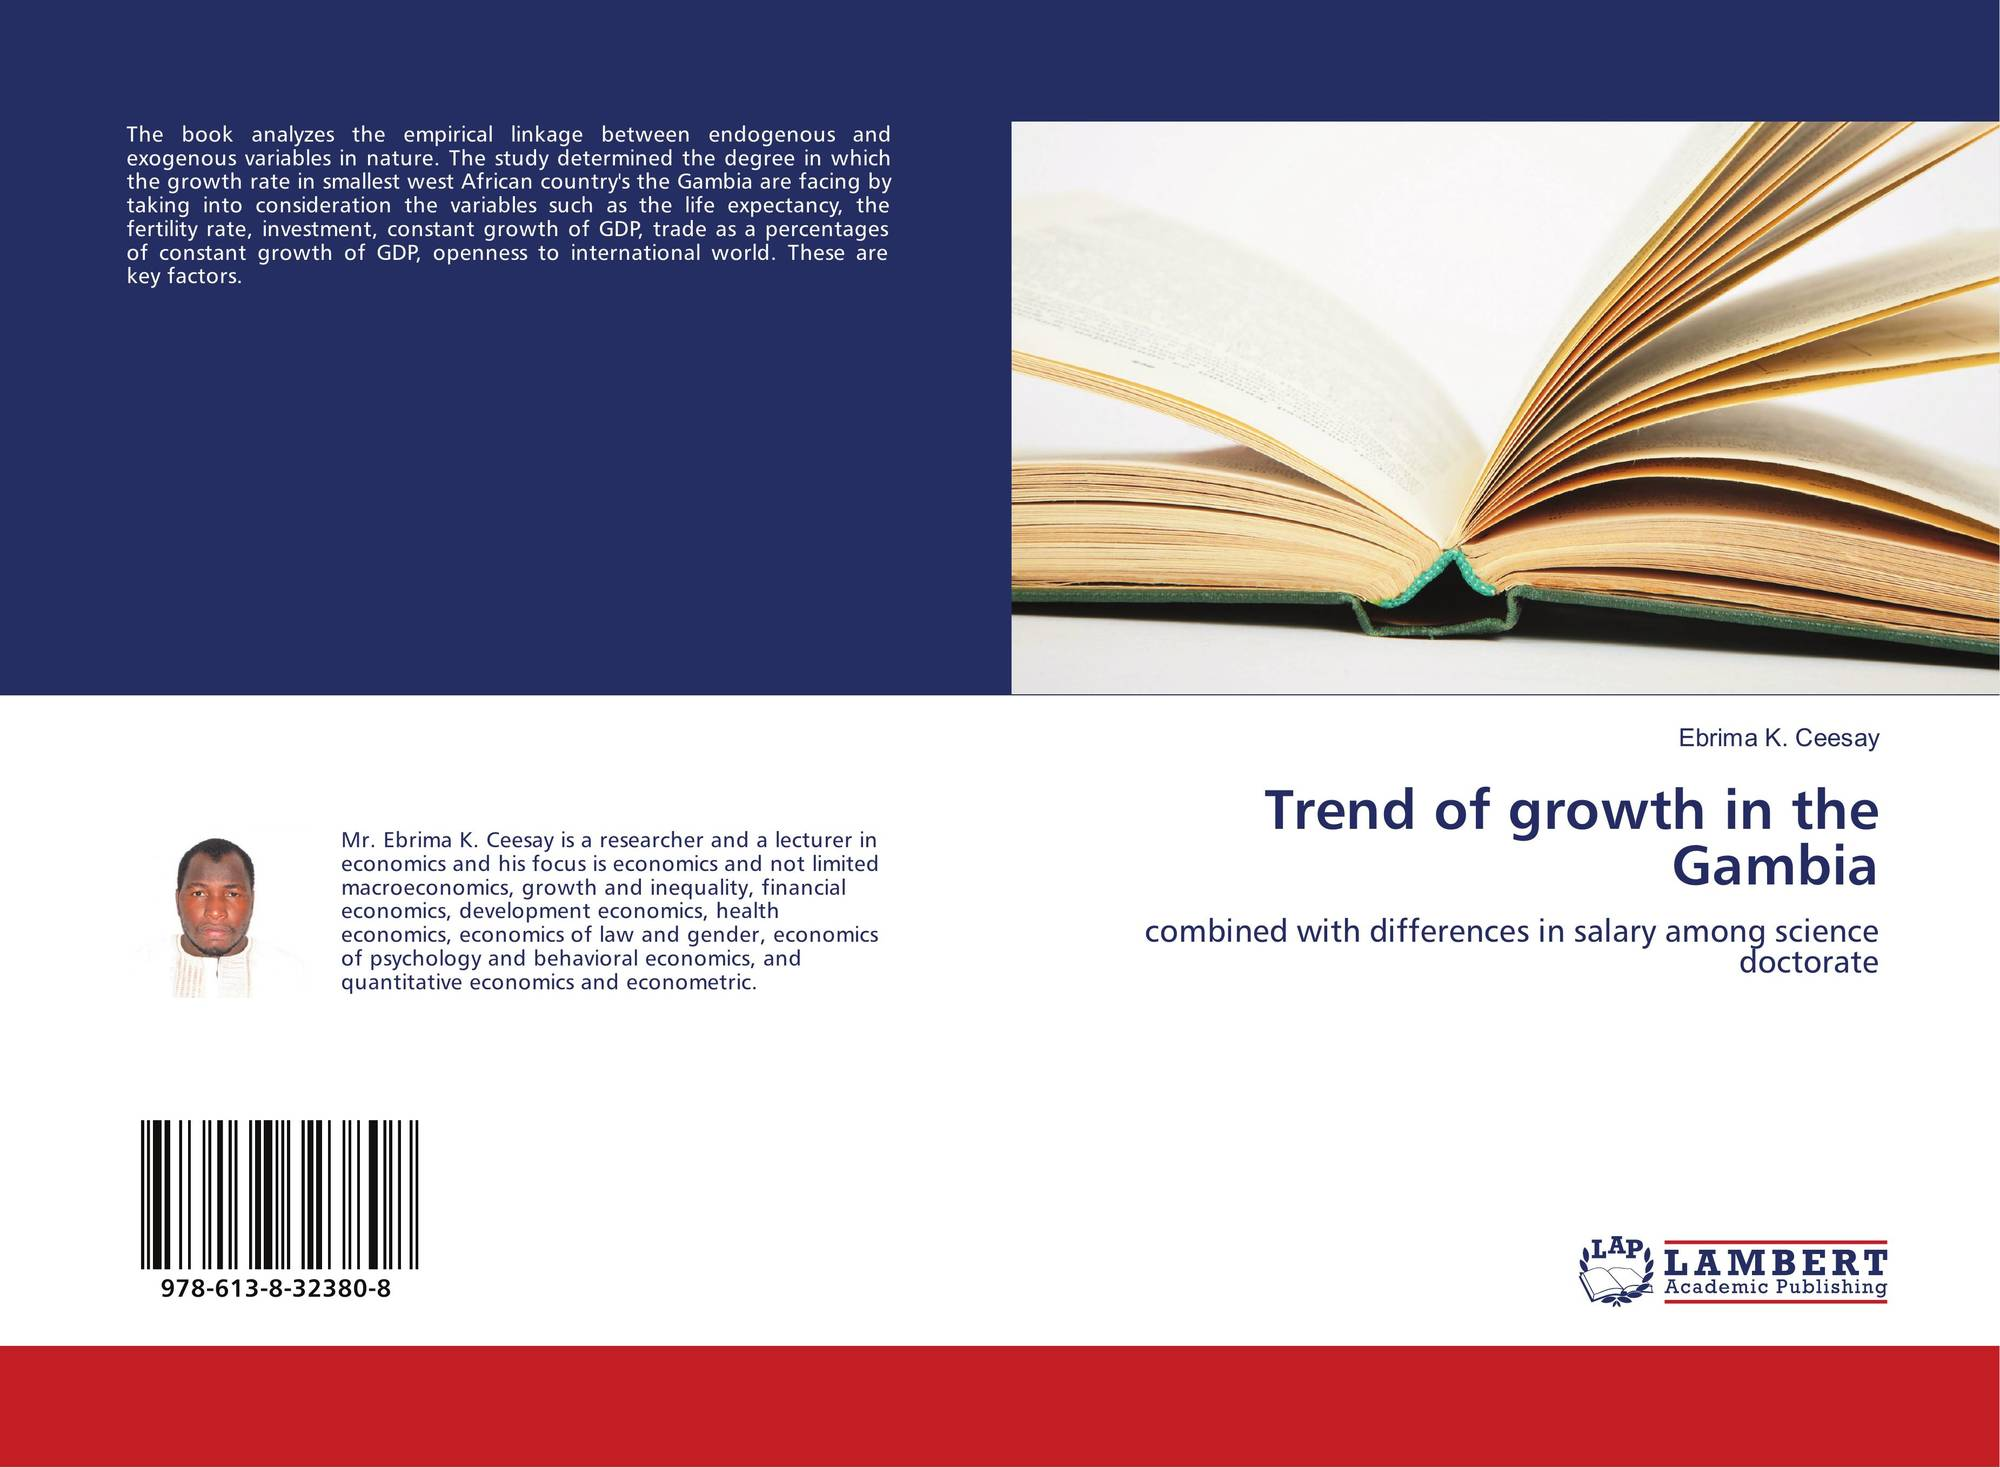 Trend of growth in the Gambia, 978-613-8-32380-8, 6138323807